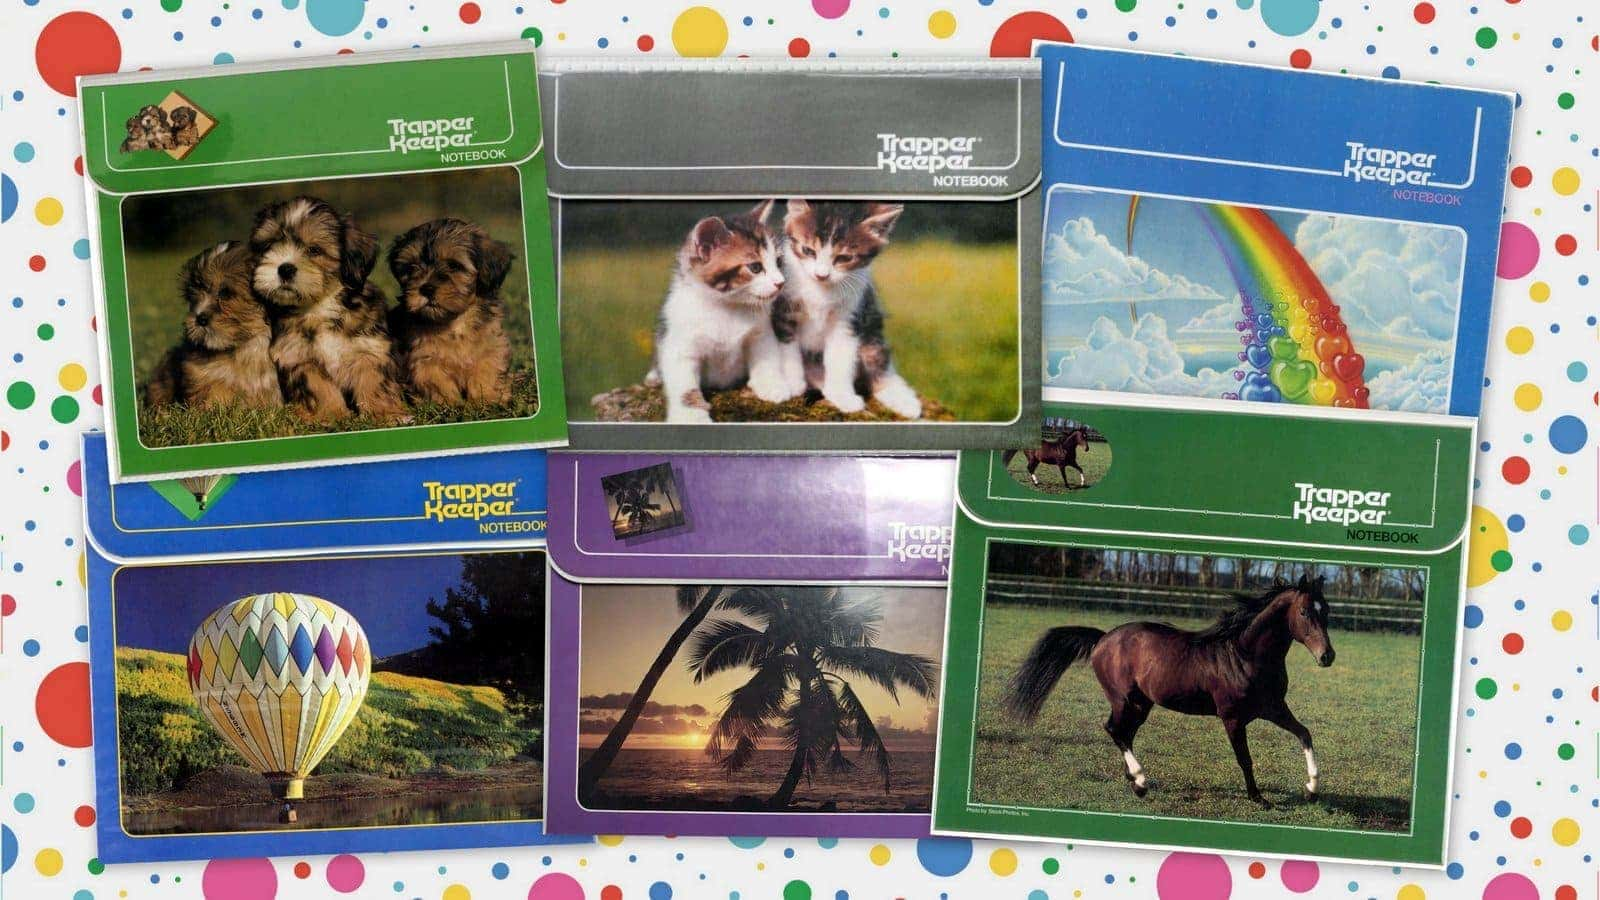 10 Trapper Keeper notebooks from the eighties